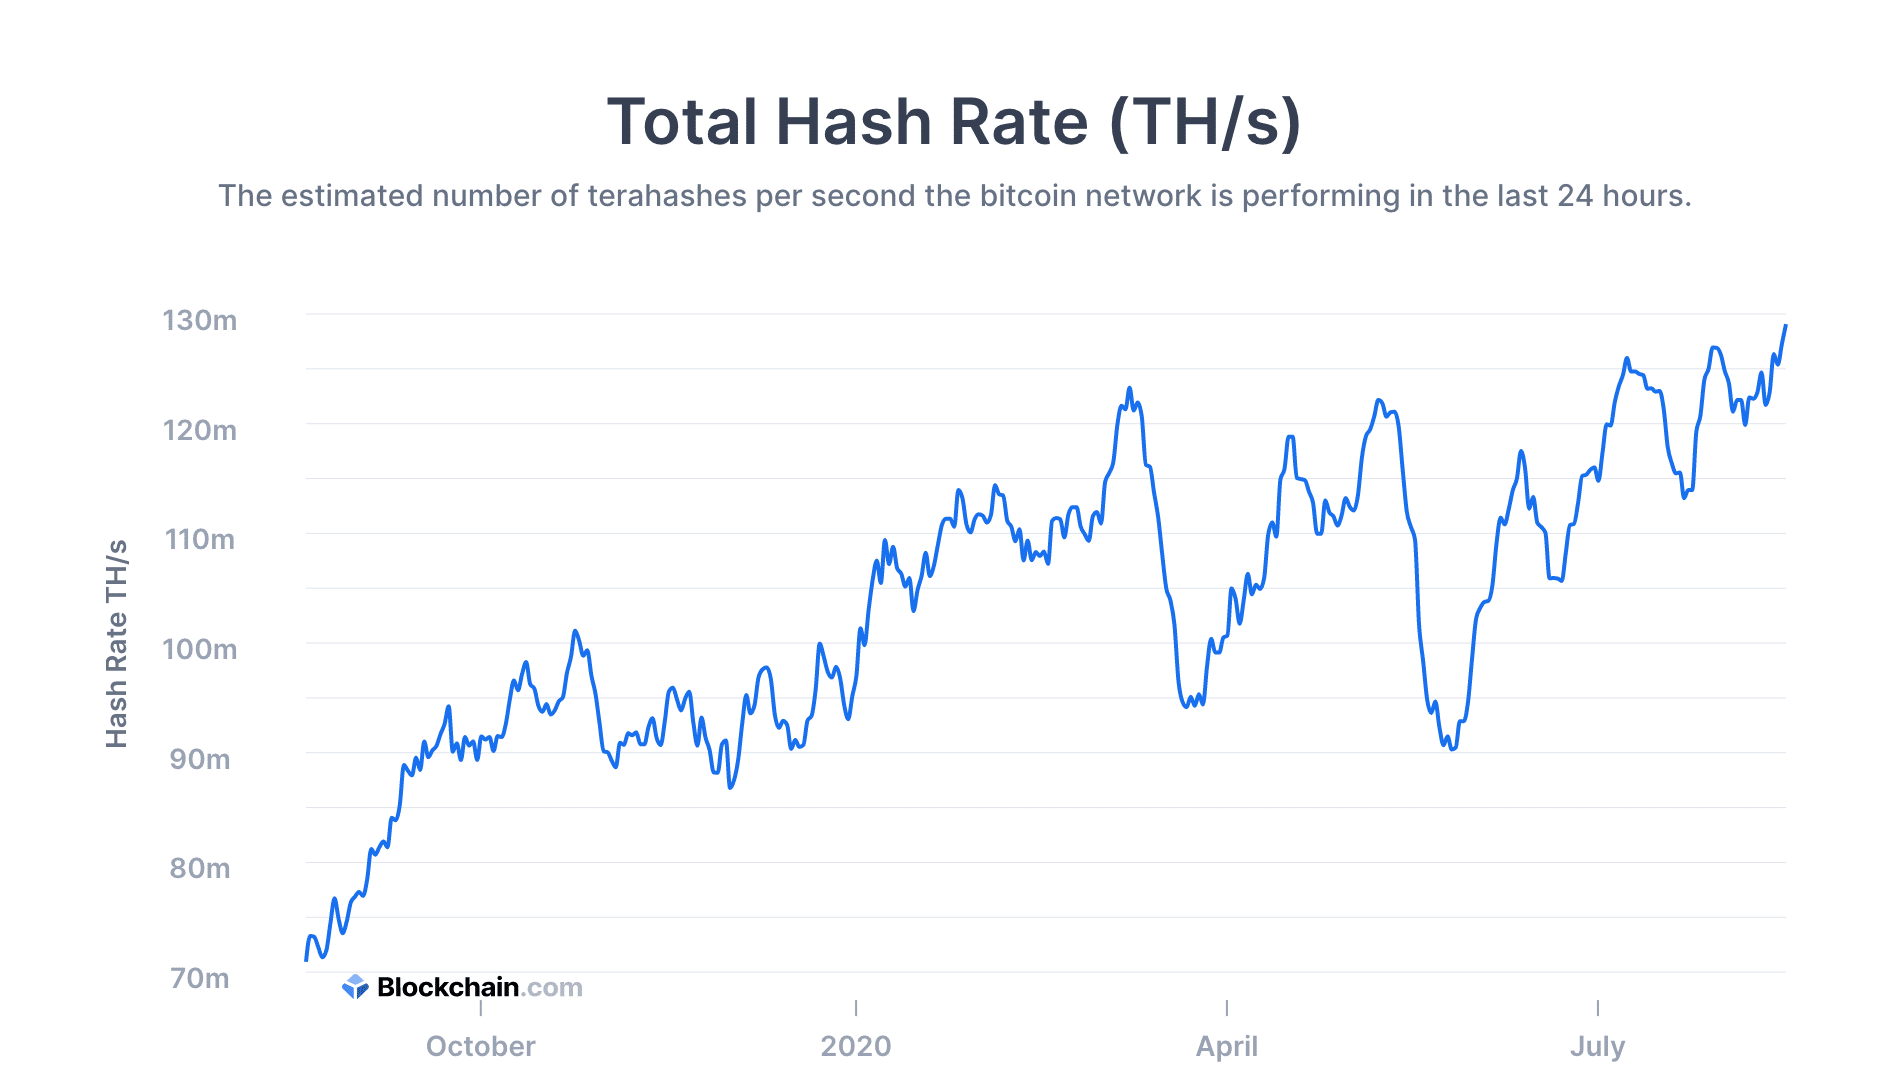 Bitcoin's Hash Rate Reaches a New All Time High (Again): Price Boost Ahead?